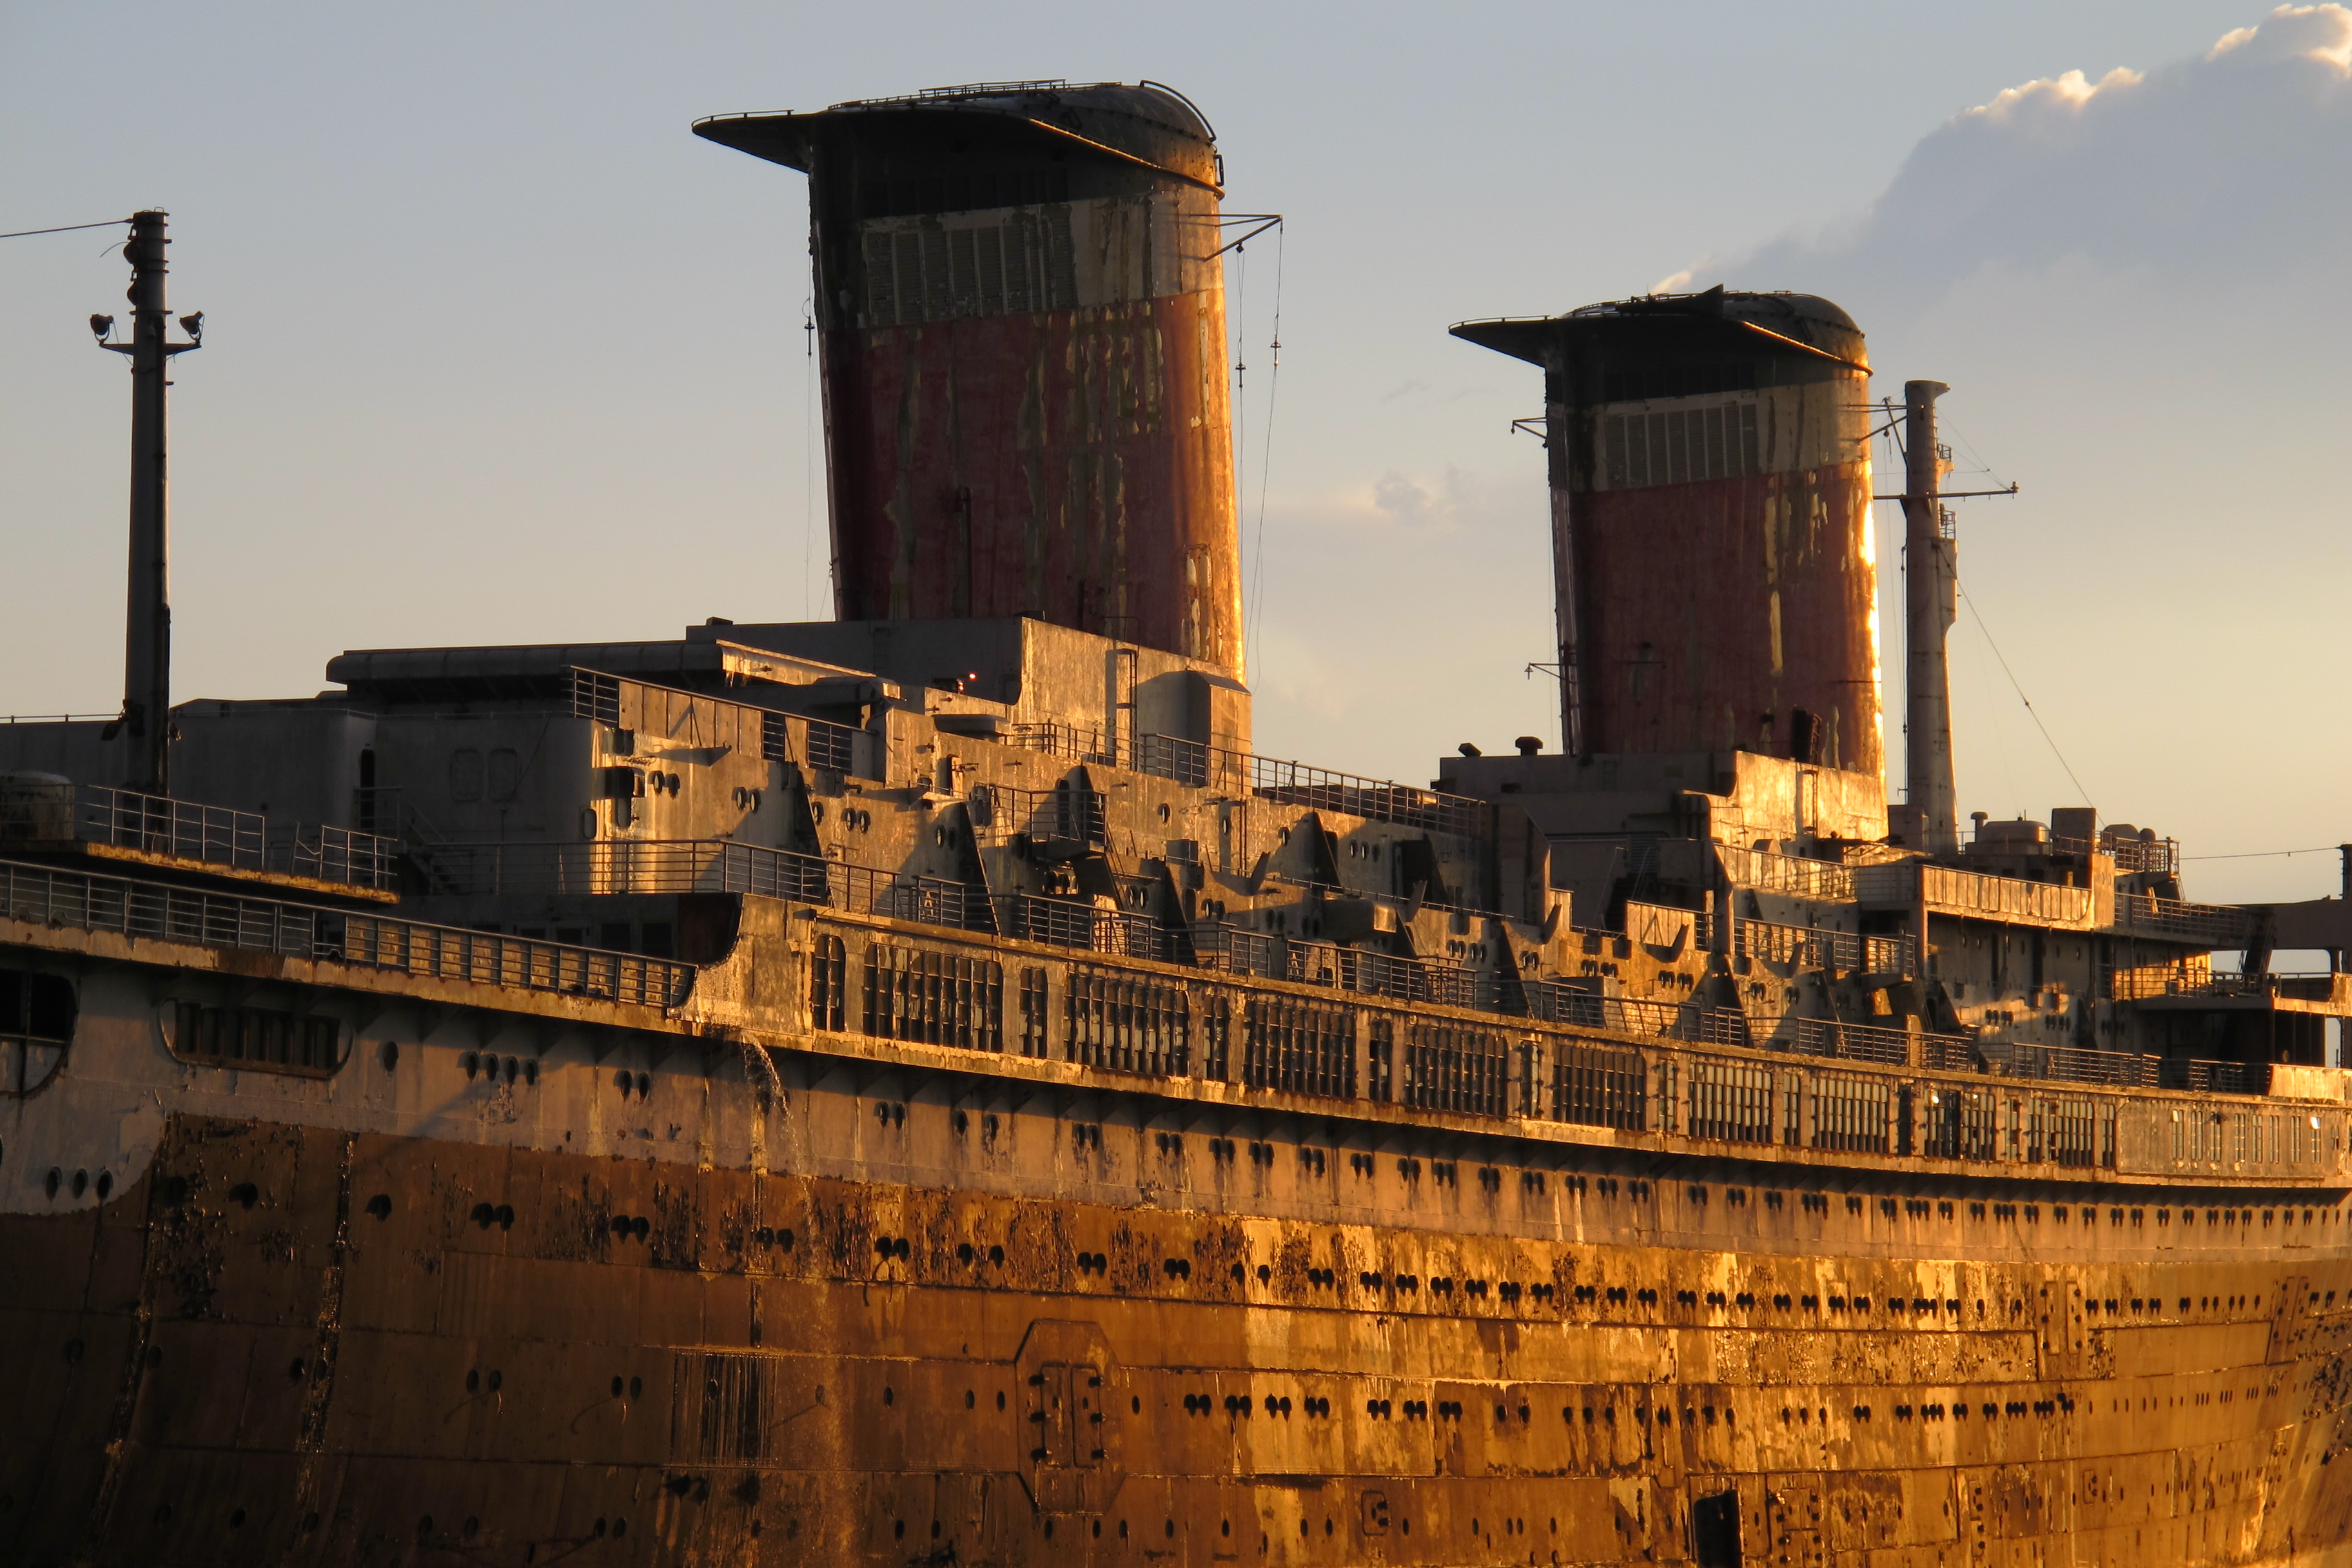 SS United States stacks